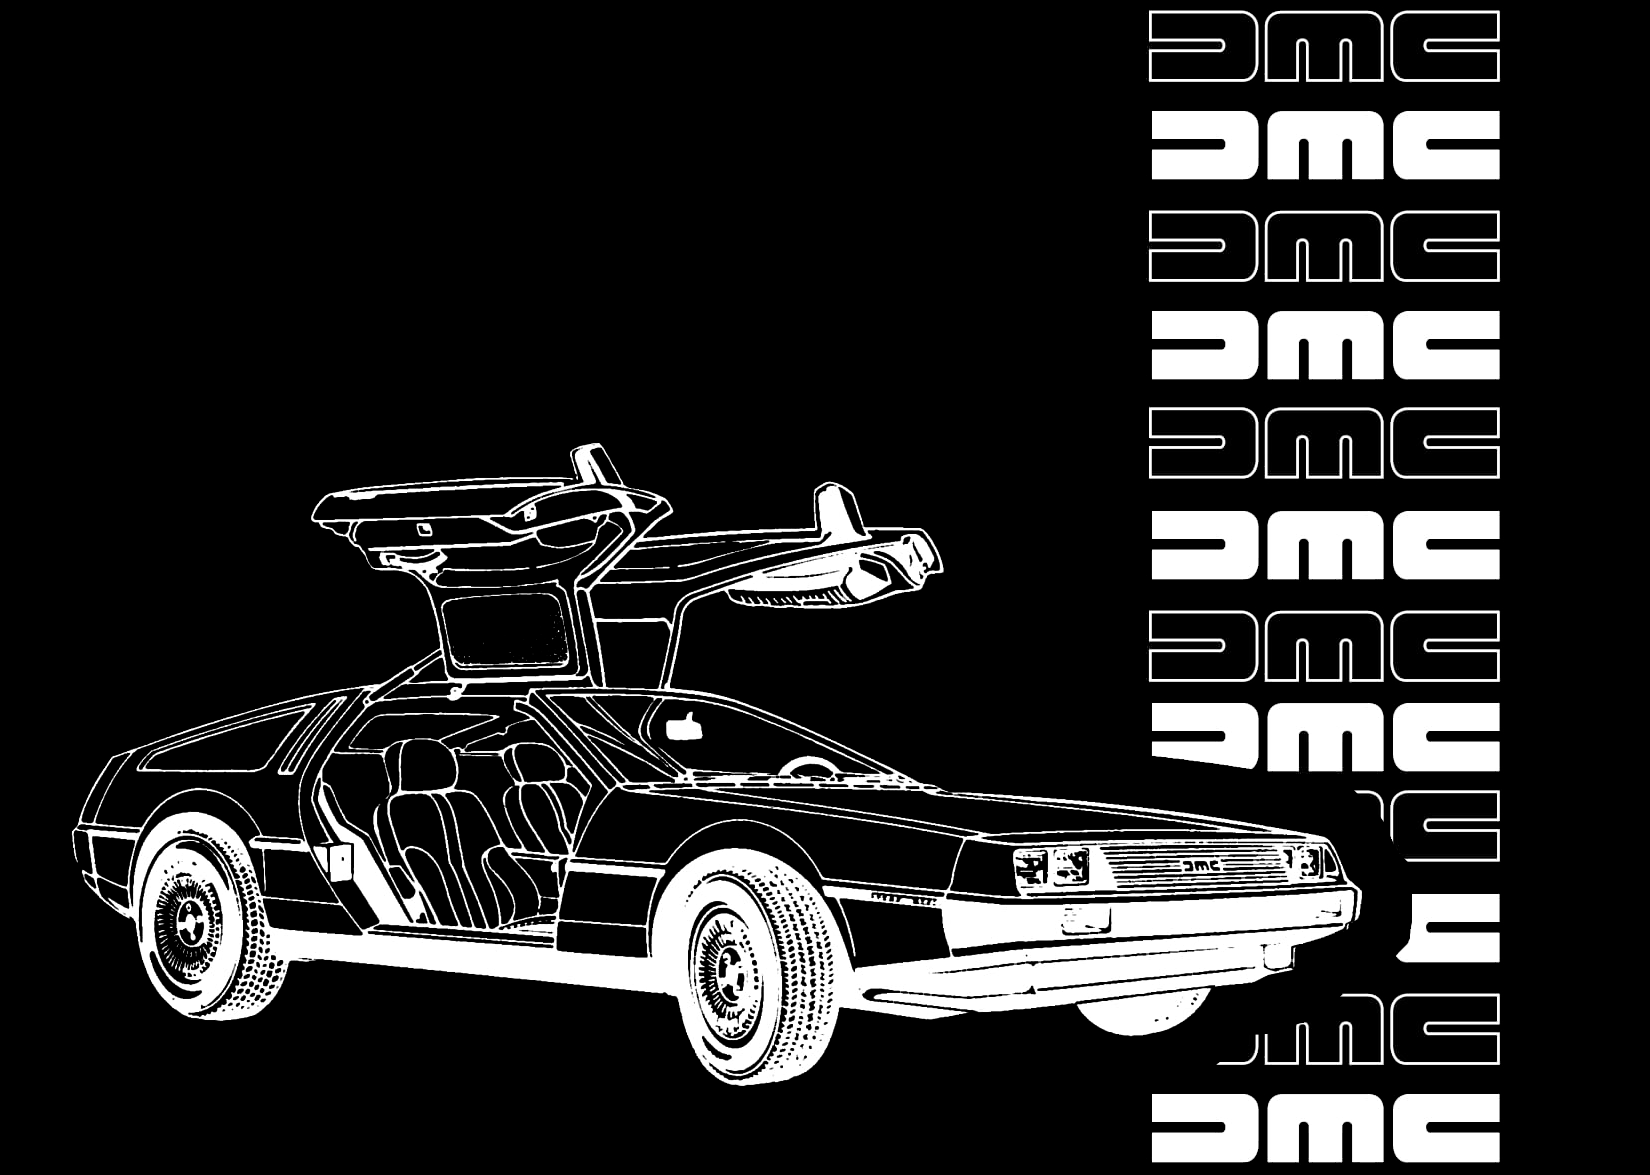 DeLorean Owners Manual | DeLoreanDirectory.com